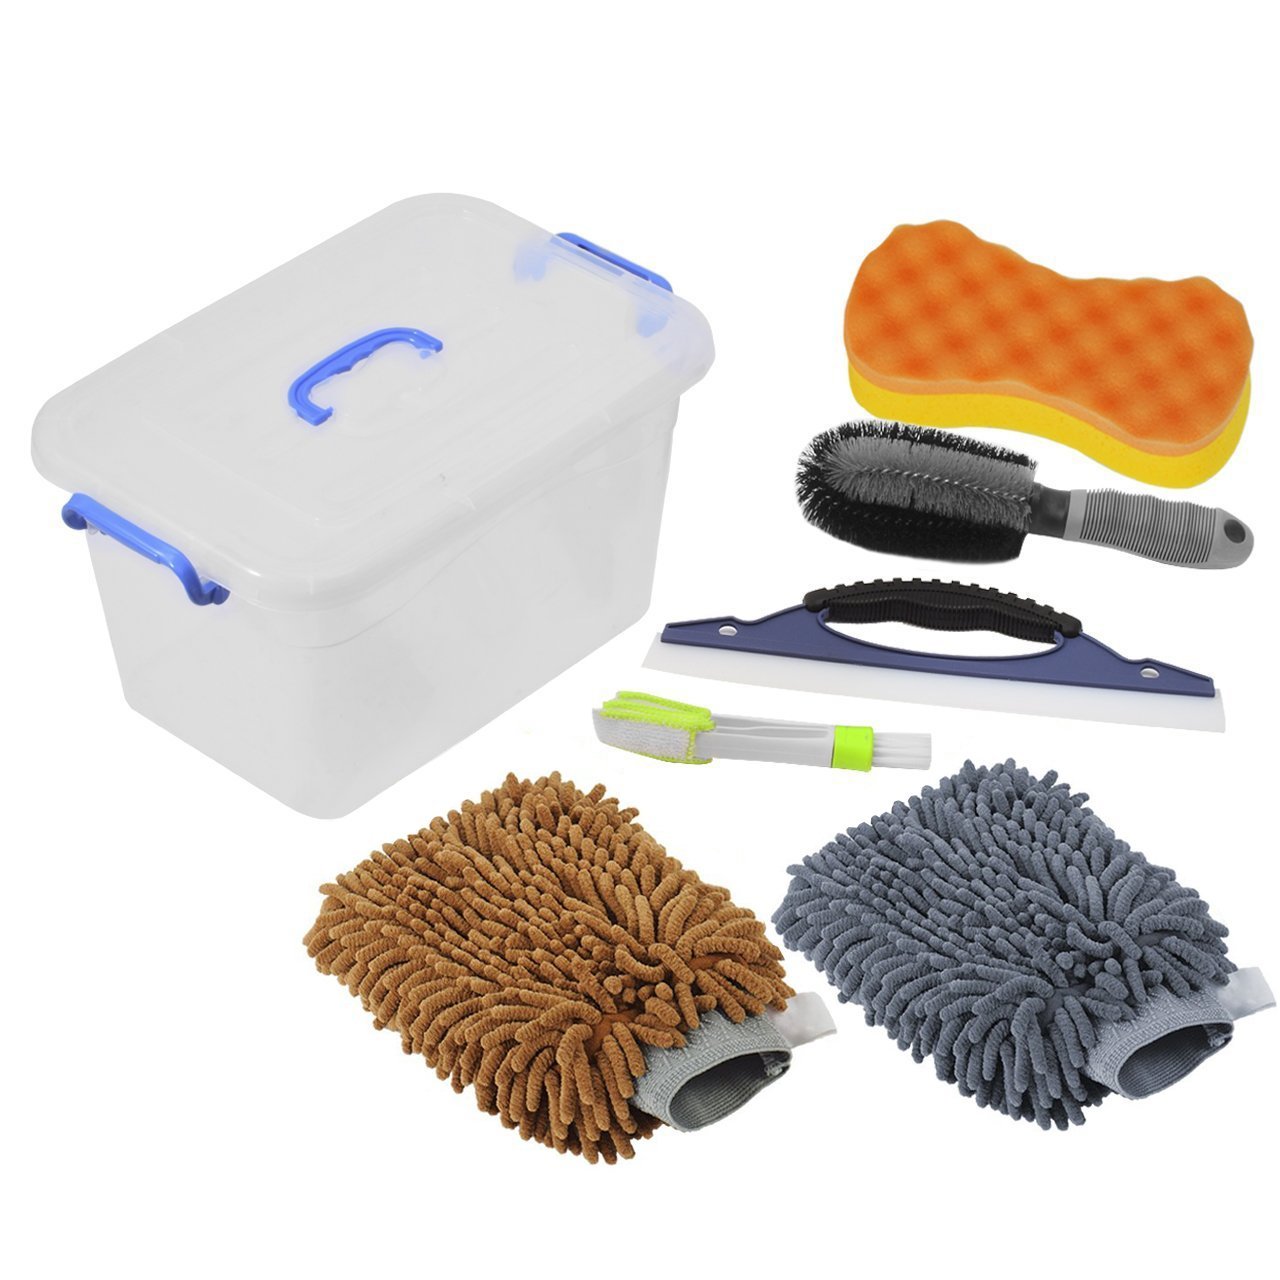 DEDC 7 Pack Car Wash Tools Kit 2 Car Wash Mitts Sponge Inside Box Bucket, Vent Brush, Water Scraper Wiper, Wheel Brush Wax Sponge Car Care Kit